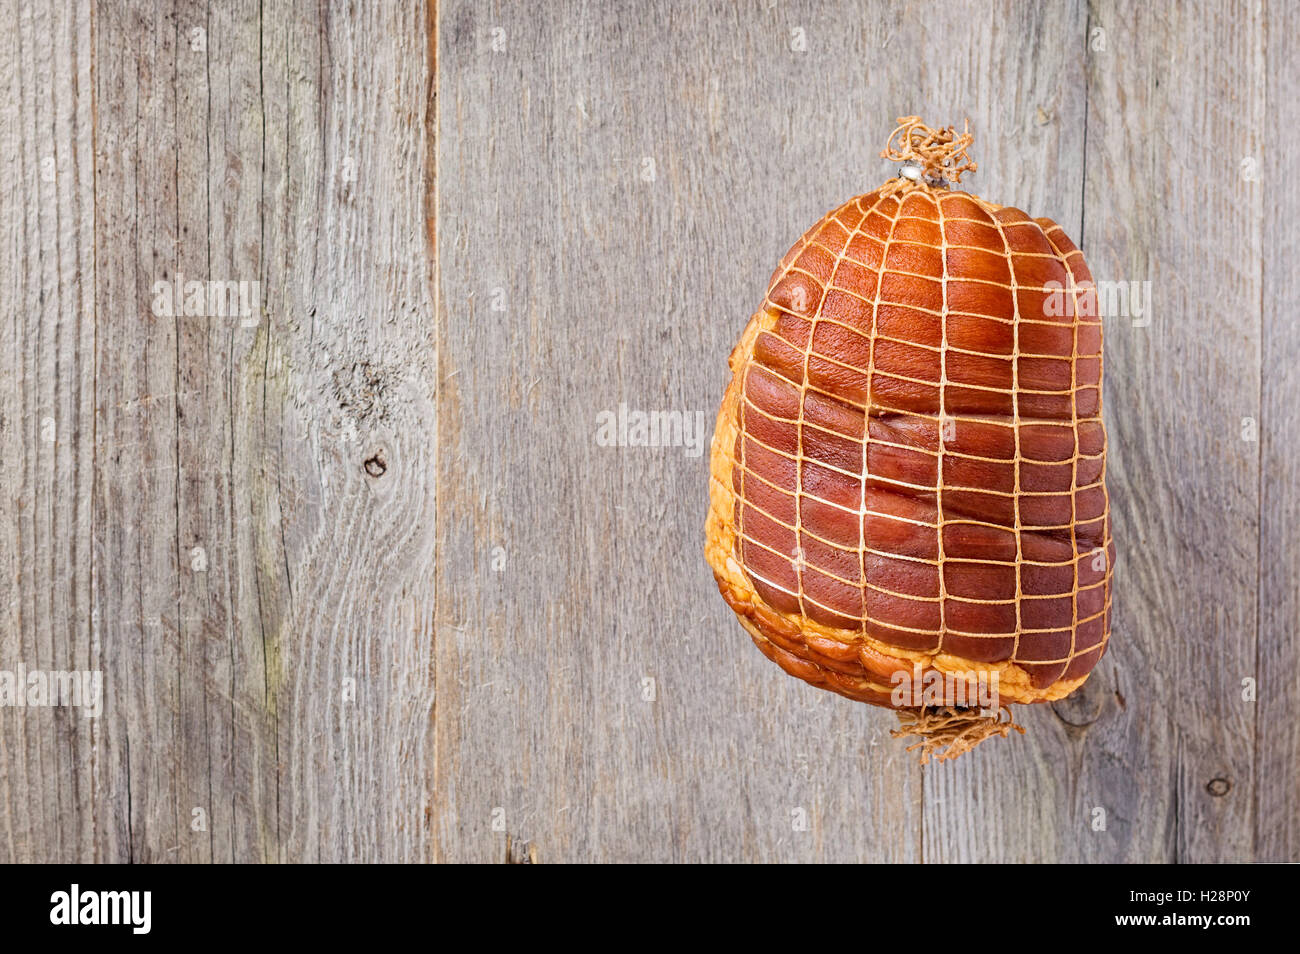 Smoked boneless pork ham hock wrapped in netting on a weathered wood background - Stock Image